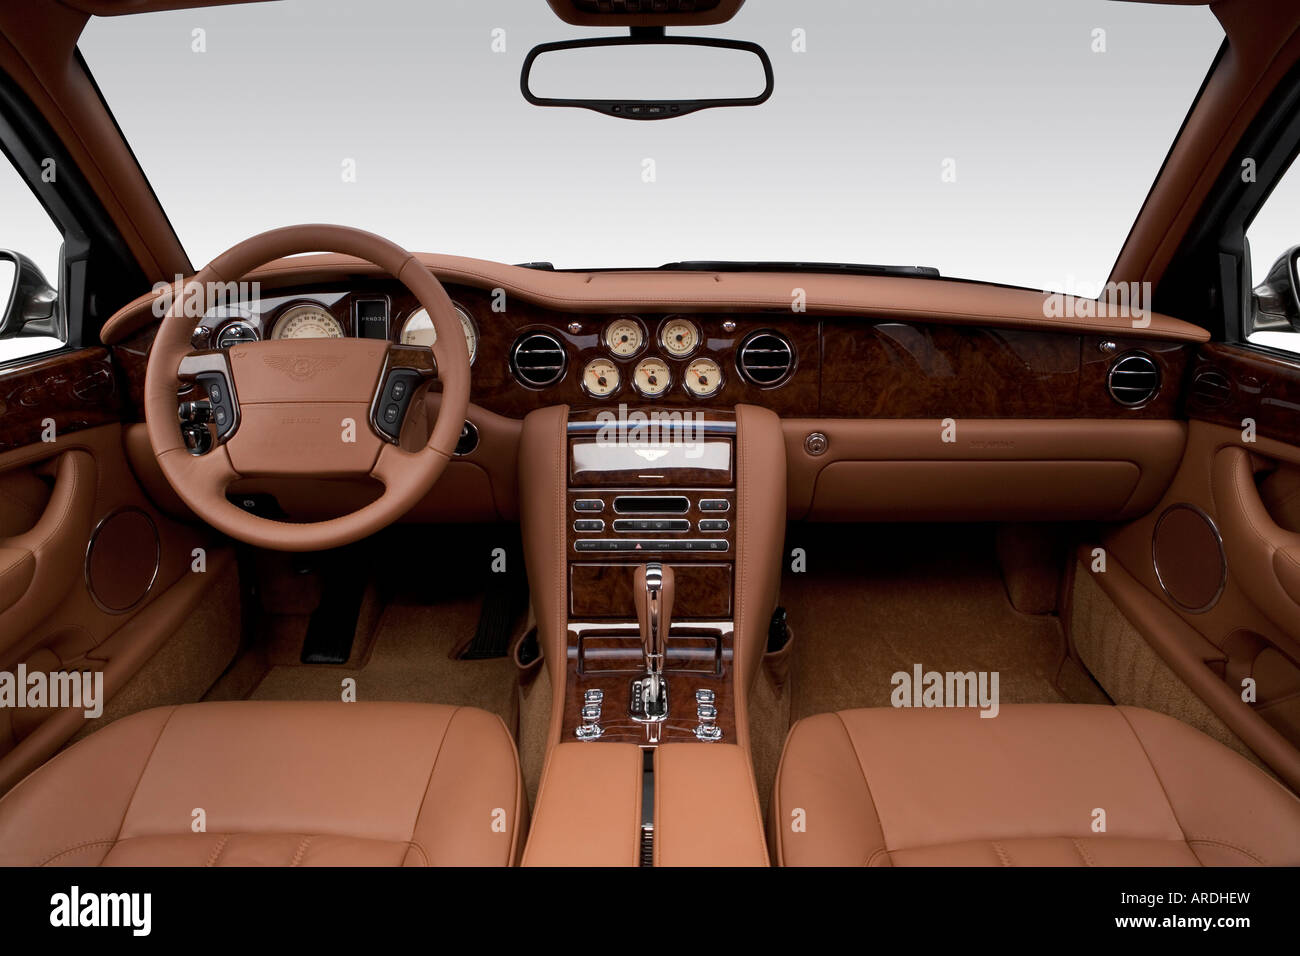 2006 bentley arnage r in green tail light stock photo royalty 2006 bentley arnage r in green dashboard center console gear shifter view vanachro Image collections